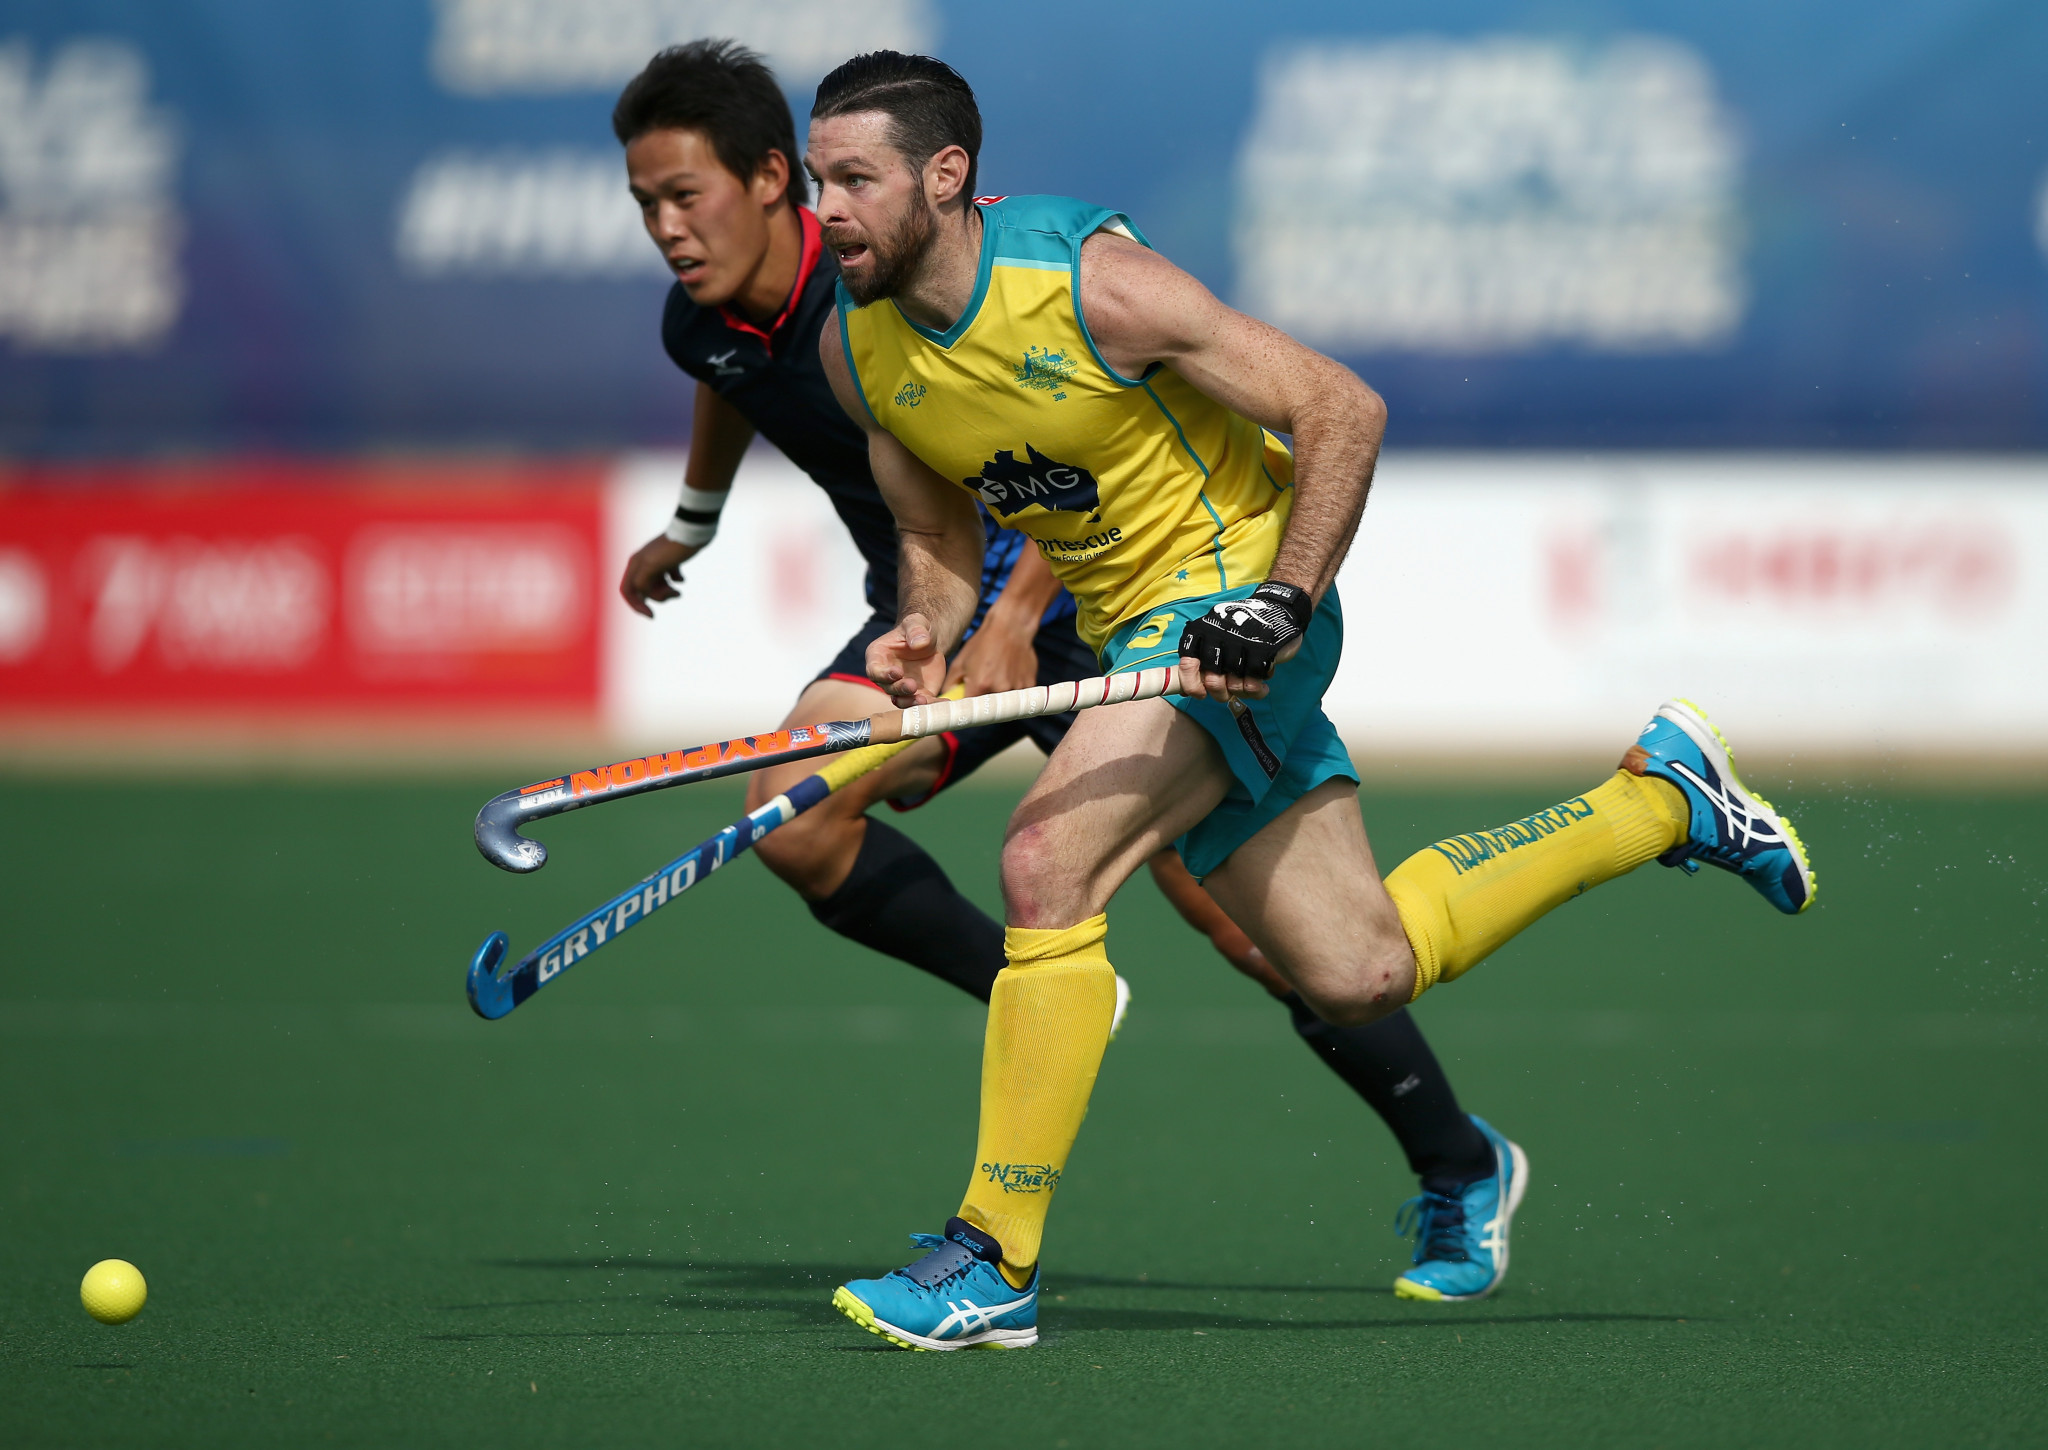 Japan and Australia to open Tokyo 2020 hockey tournament